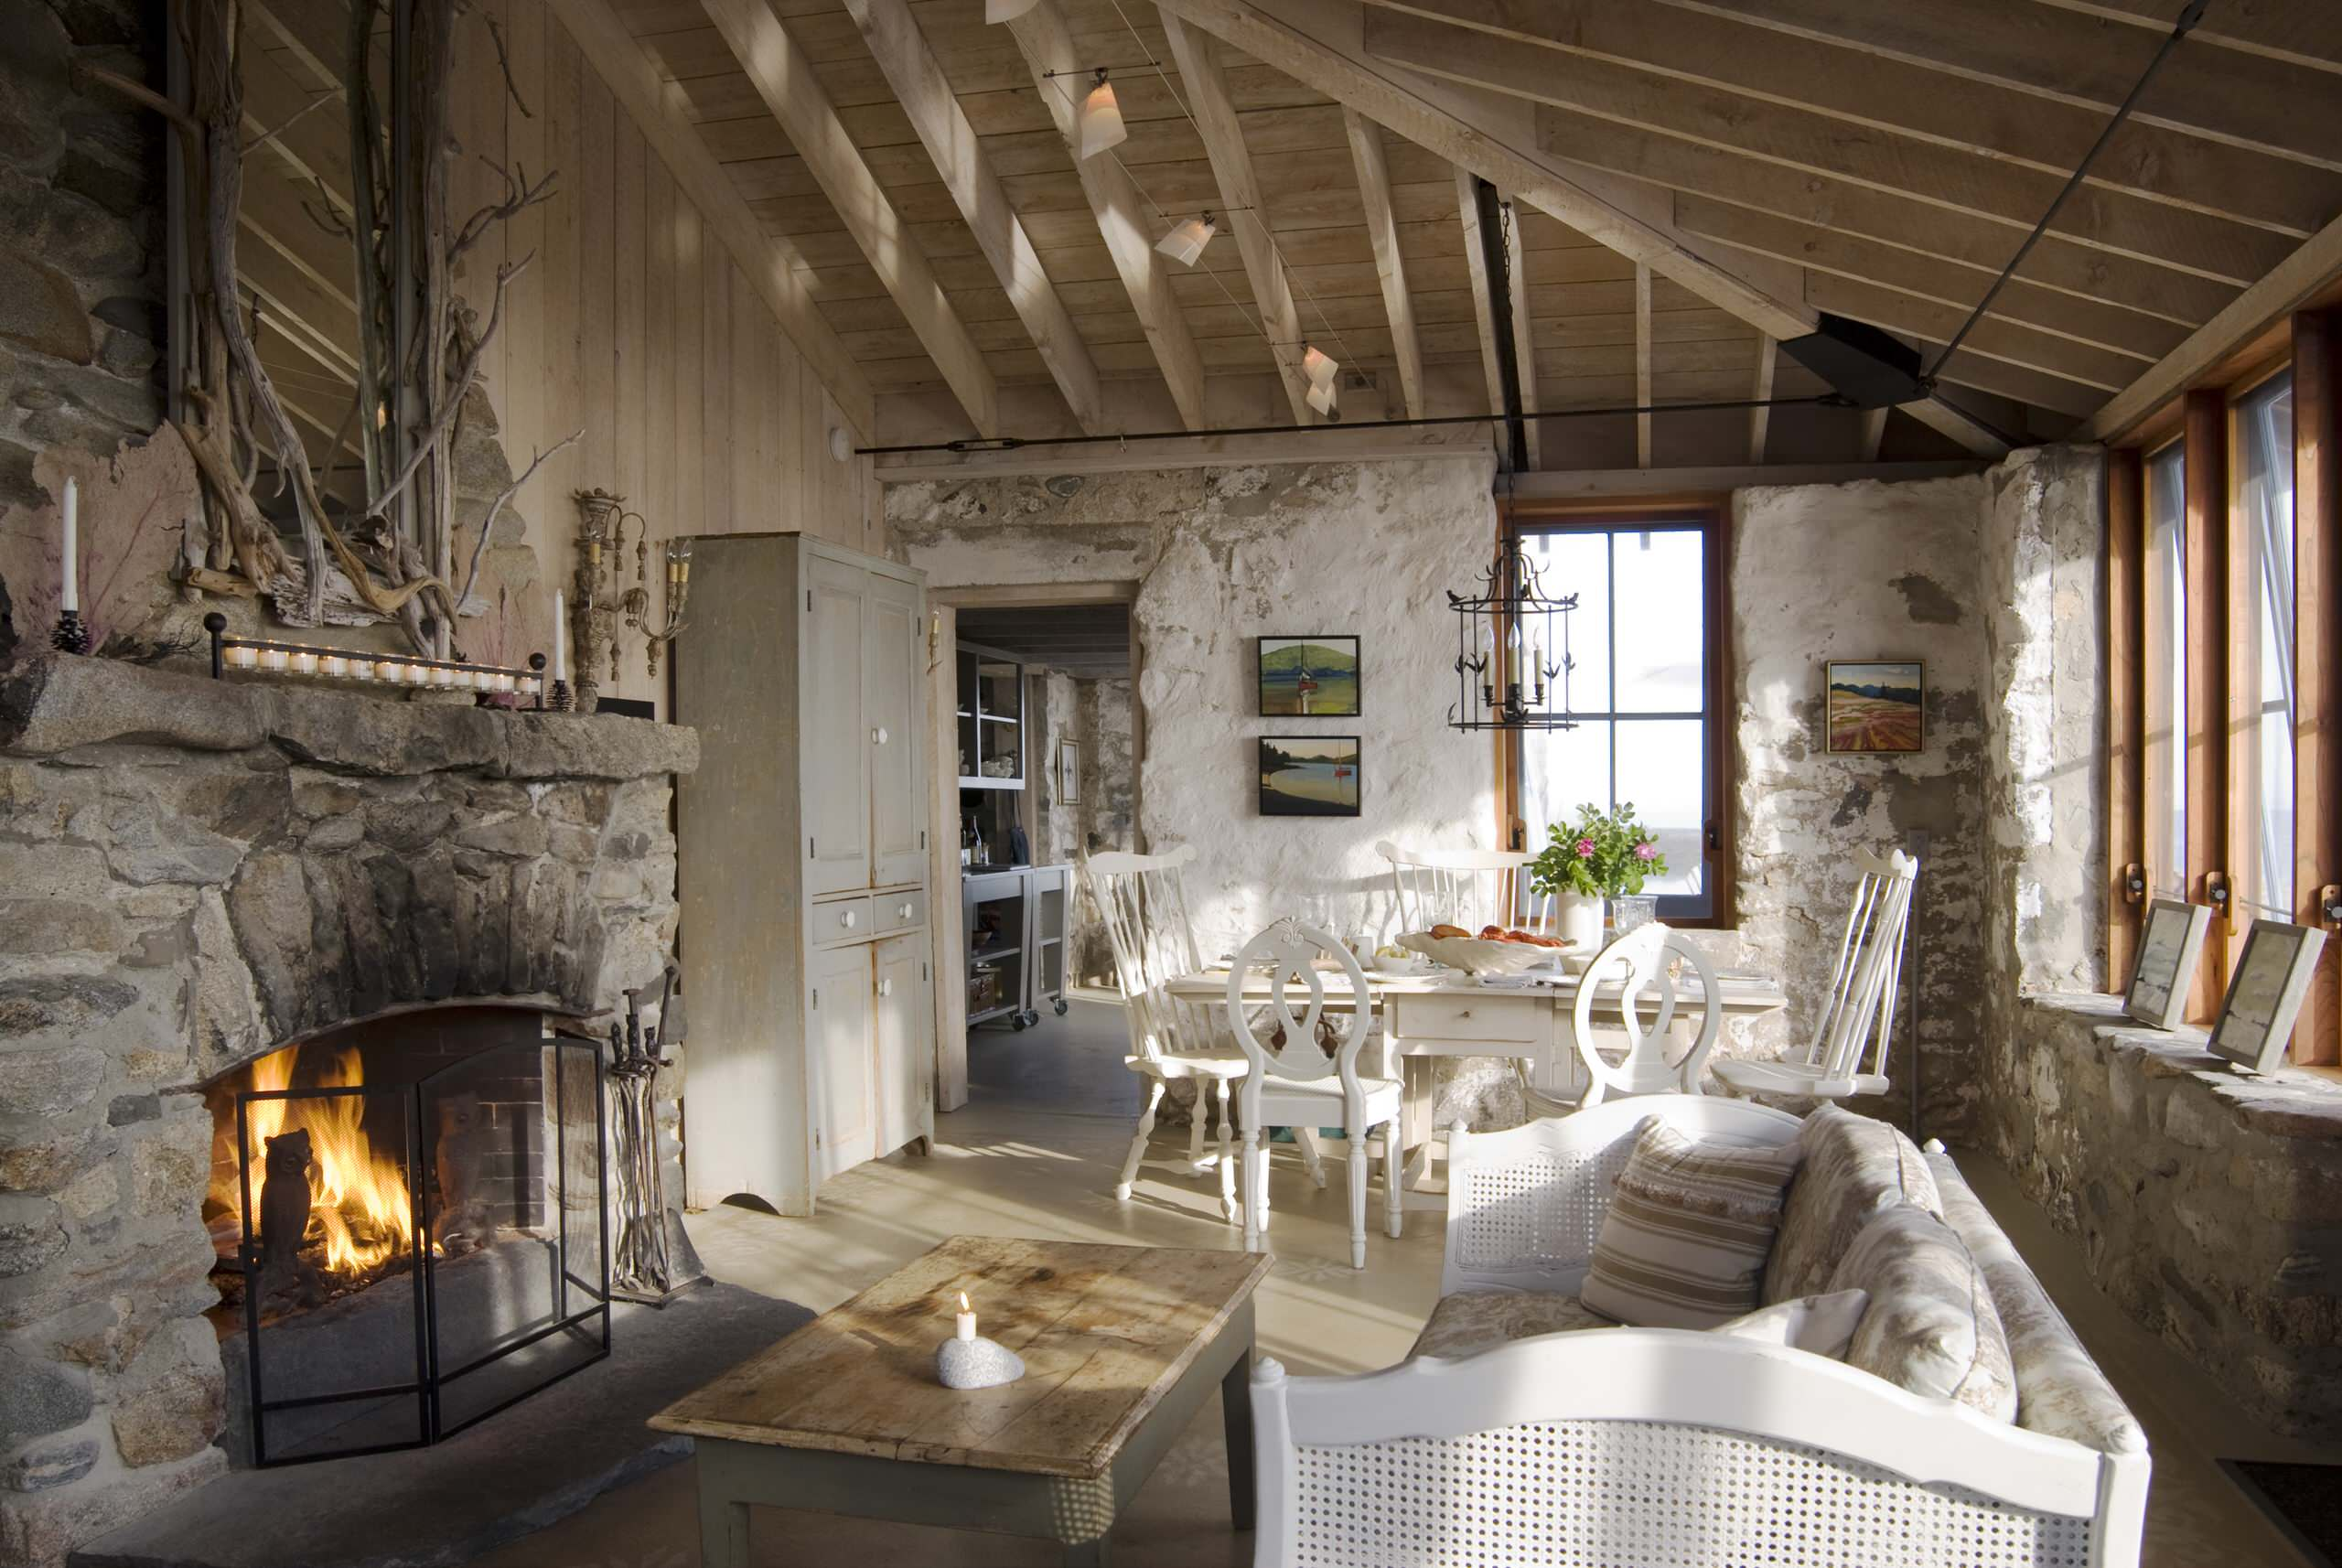 Country Rustic Farmhouse Decor Living Room White Wash Walls Fireplace Stone Cottage Neutral Cream Beige